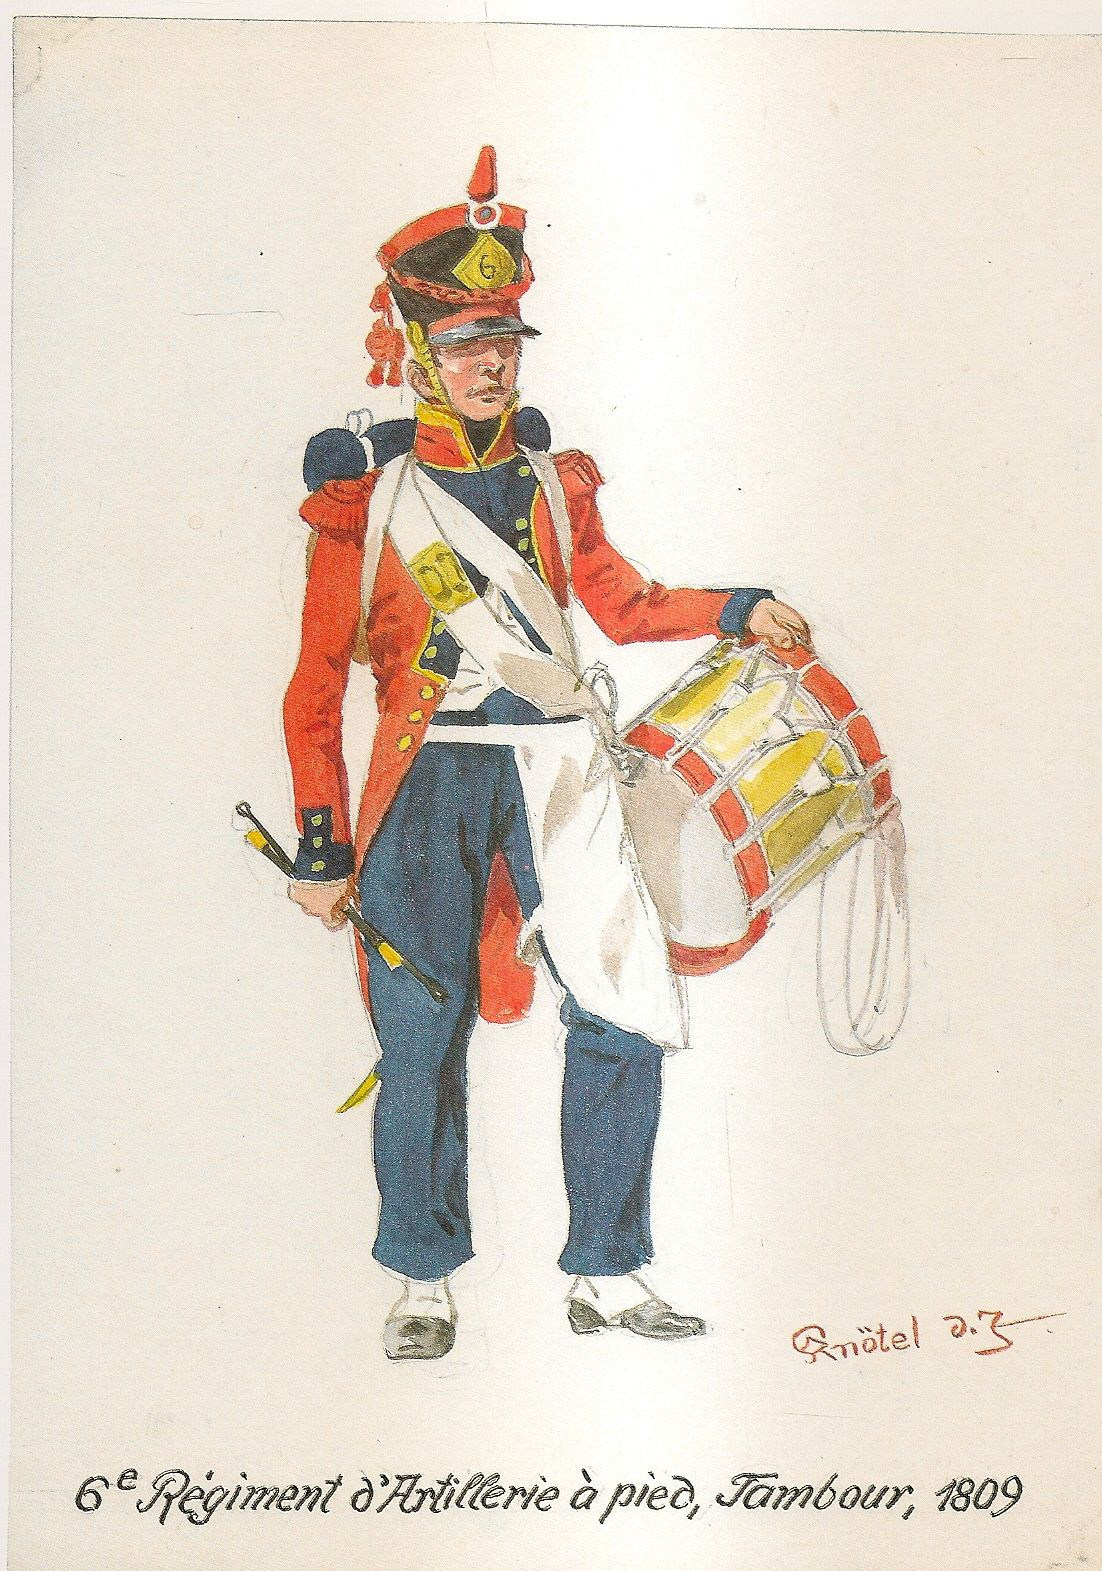 French; 6th Regiment of Foot Artillery, Drummer 1809 by H.Knotel